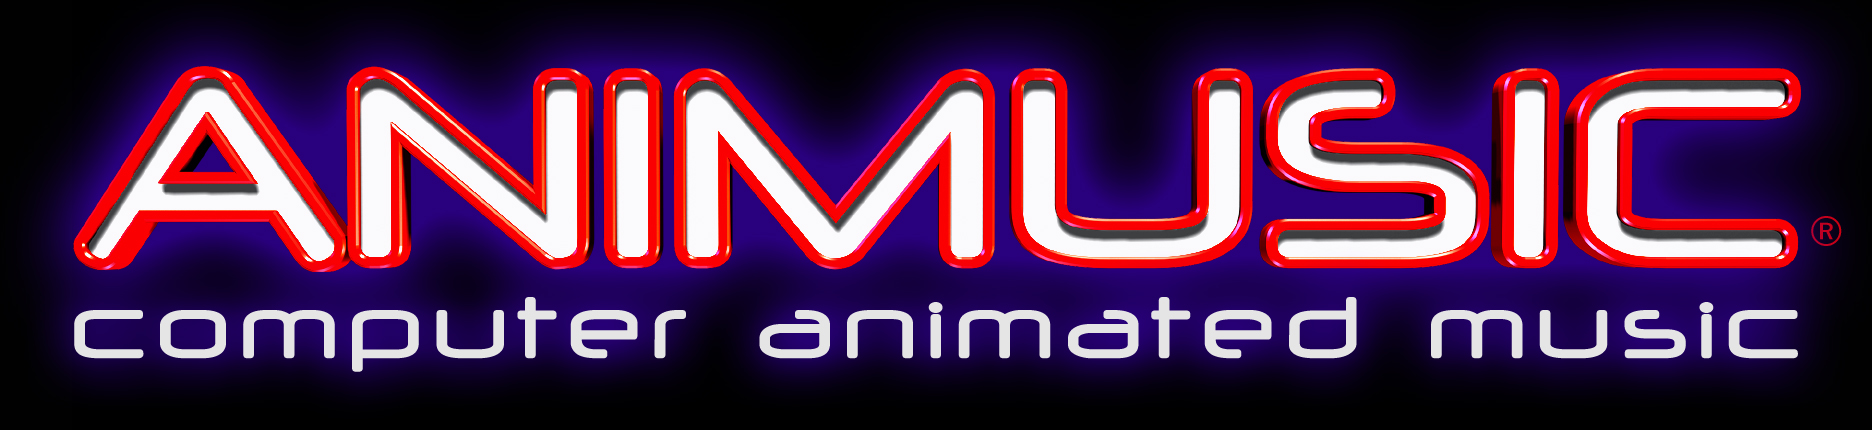 Animusic 2 Logo with tag line: